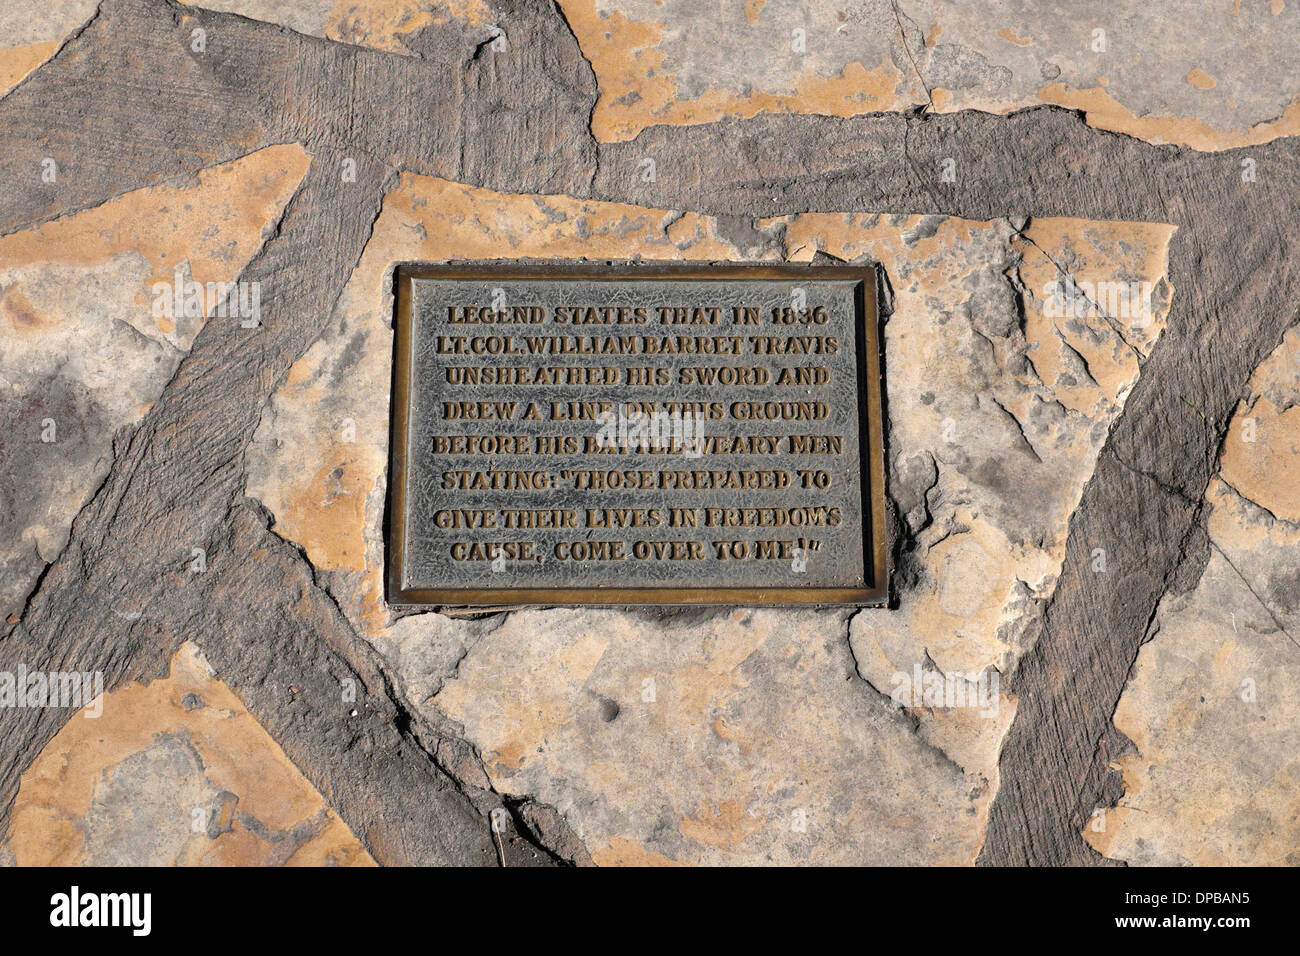 Line at Alamo -  Lt. Col. William Barret Travis drew a line at the Alamo inviting his men to step across and die for freedom - Stock Image